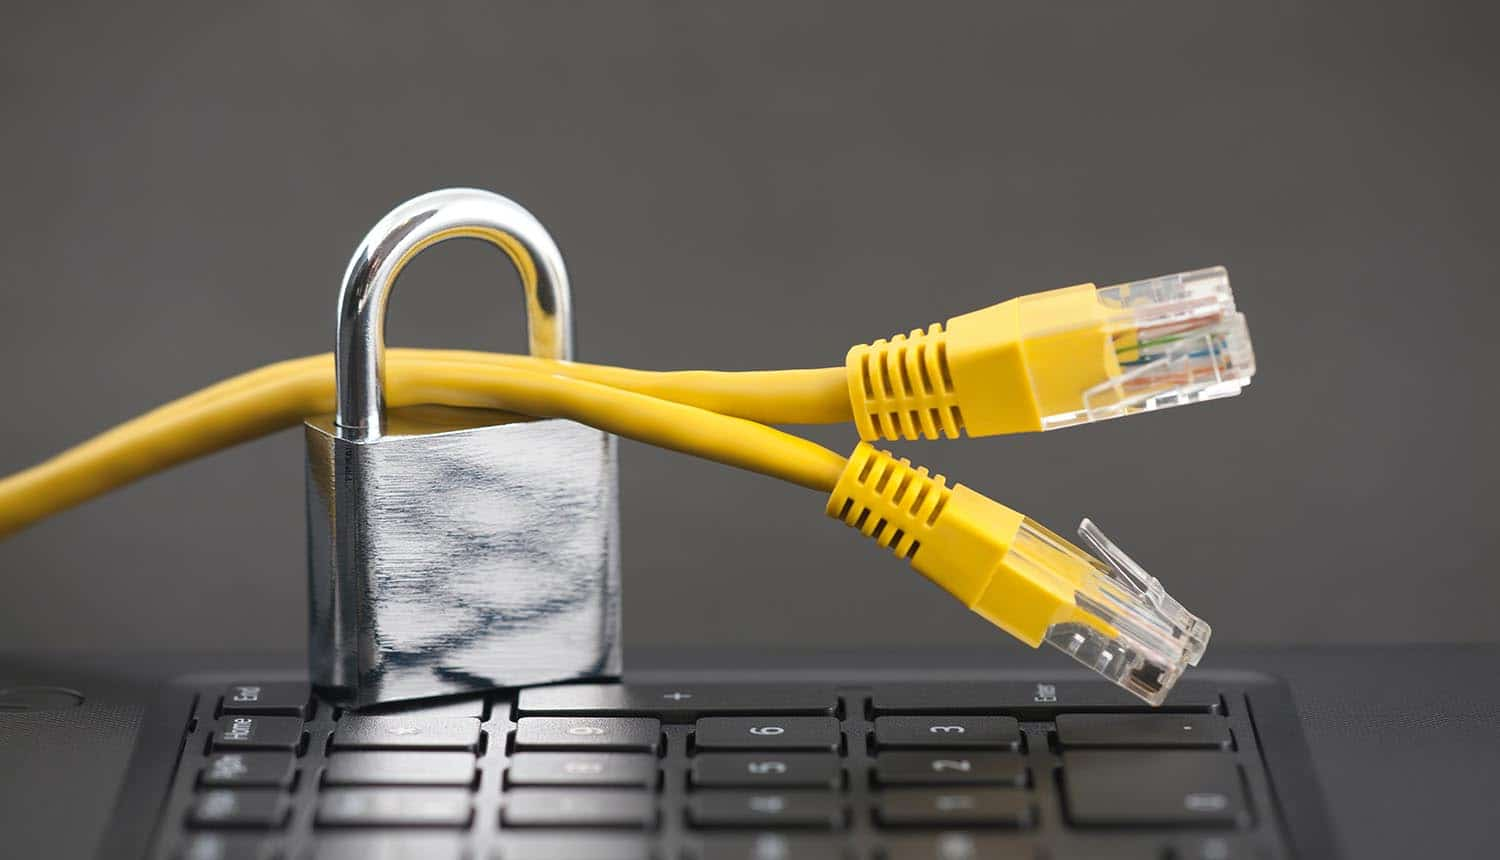 Padlock on network cables on computer keyboard showing benefits of VPNs